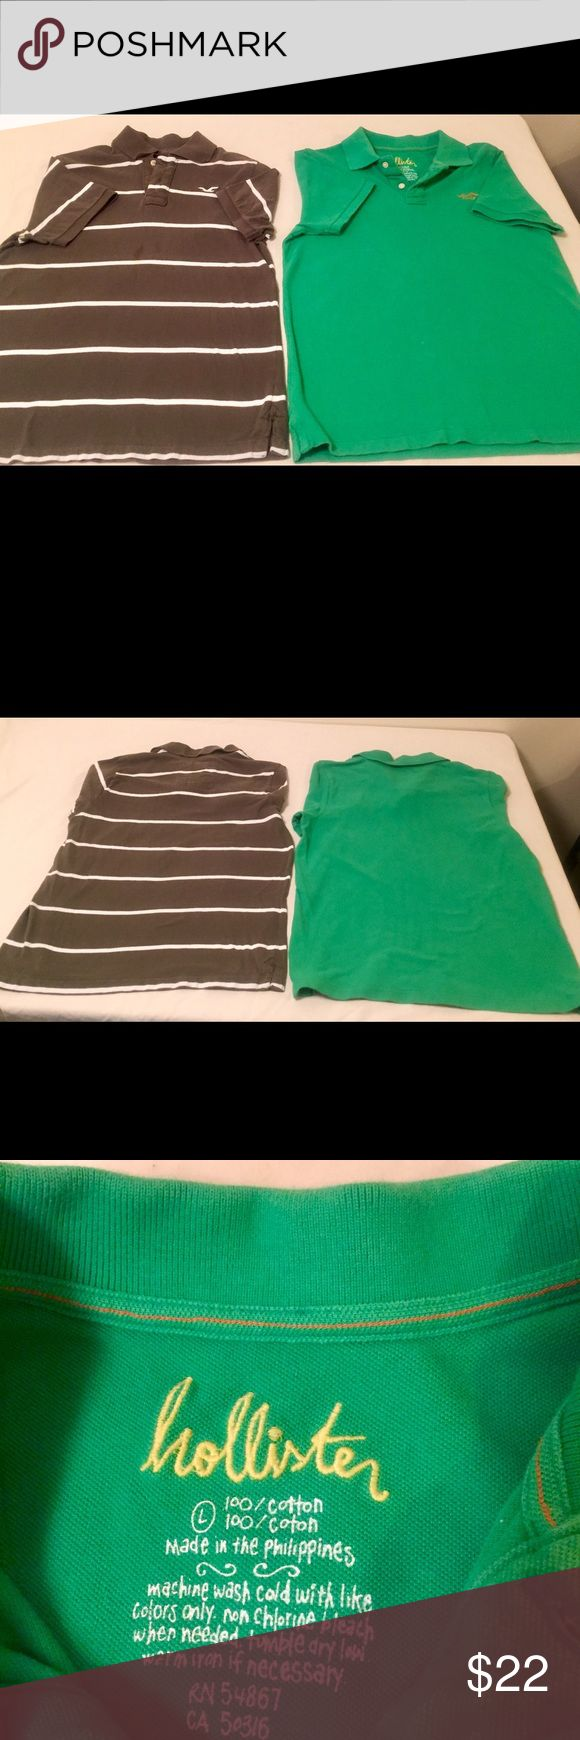 Hollister and Hollister California Polo Shirts. Two Large 100% Cotton Polos. Brown has small  not to noticeable spots on front. Green has a small fade spot on front. Hollister Shirts Polos